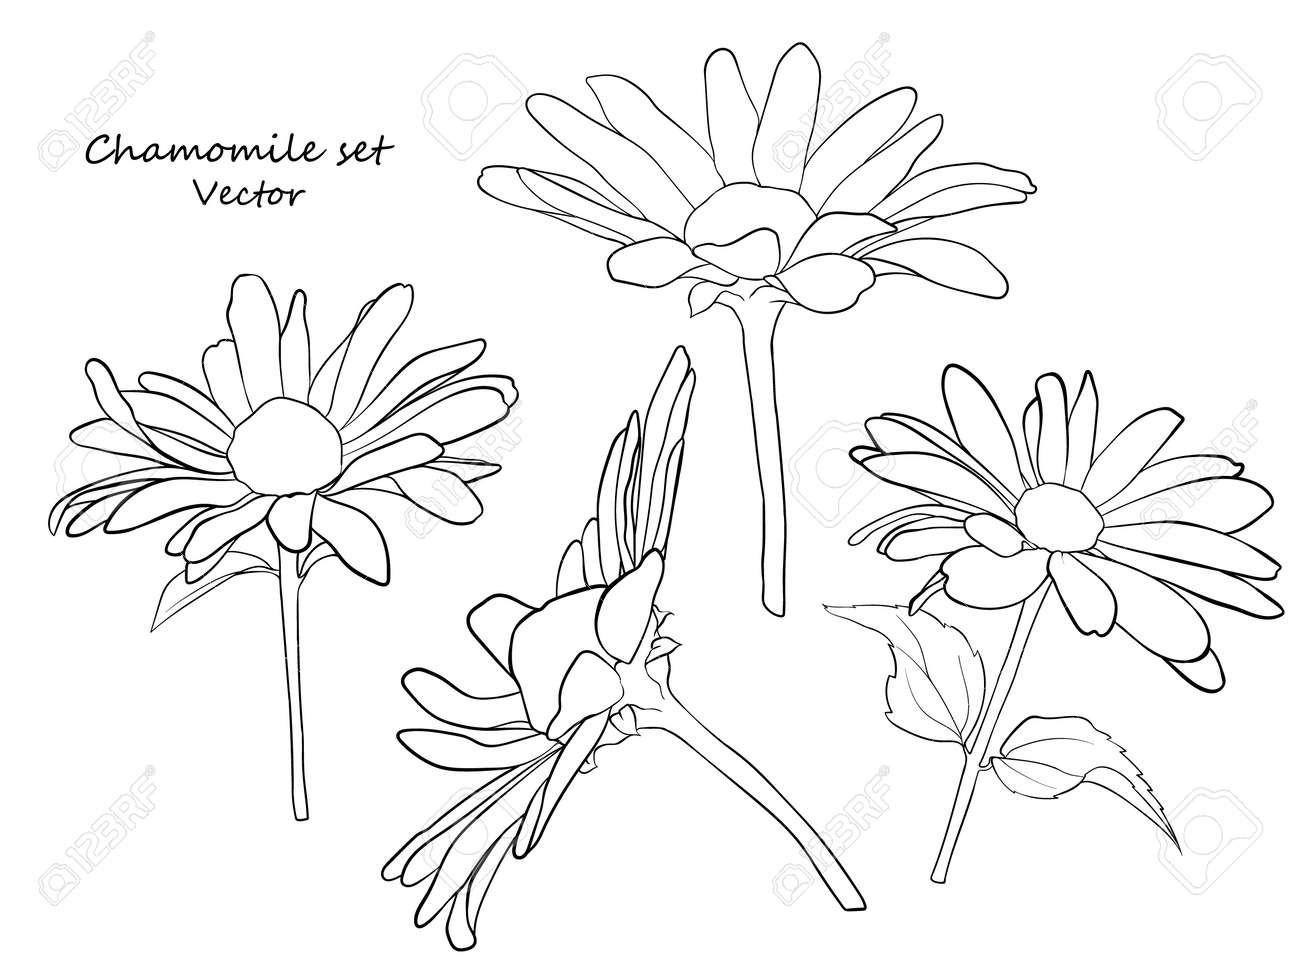 Floral Contour Set Of Daisies A Set For Drawing Up Flower Arrangements Royalty Free Cliparts Vectors And Stock Illustration Image 159860711